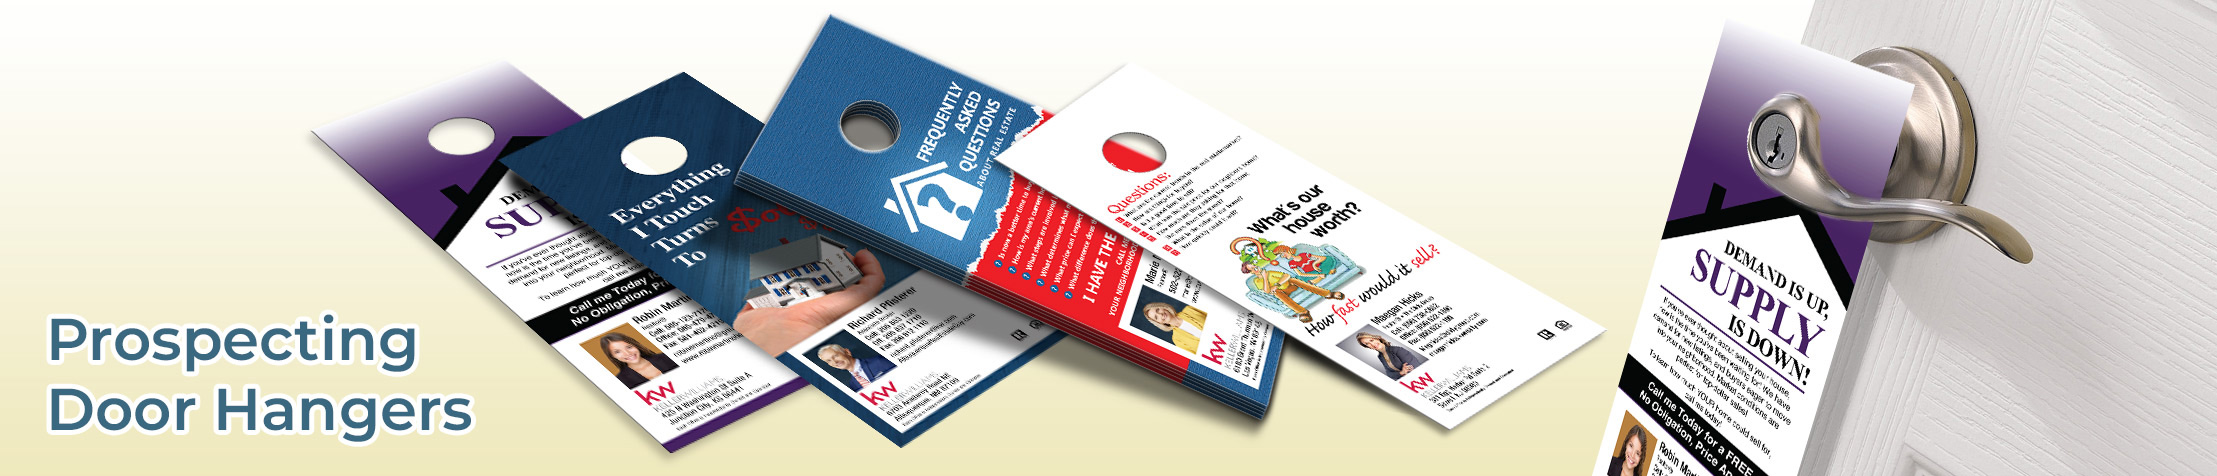 Keller Williams Prospecting Door Hangers - KW Approved Vendor Gloss Door Knockers for Realtors | BestPrintBuy.com